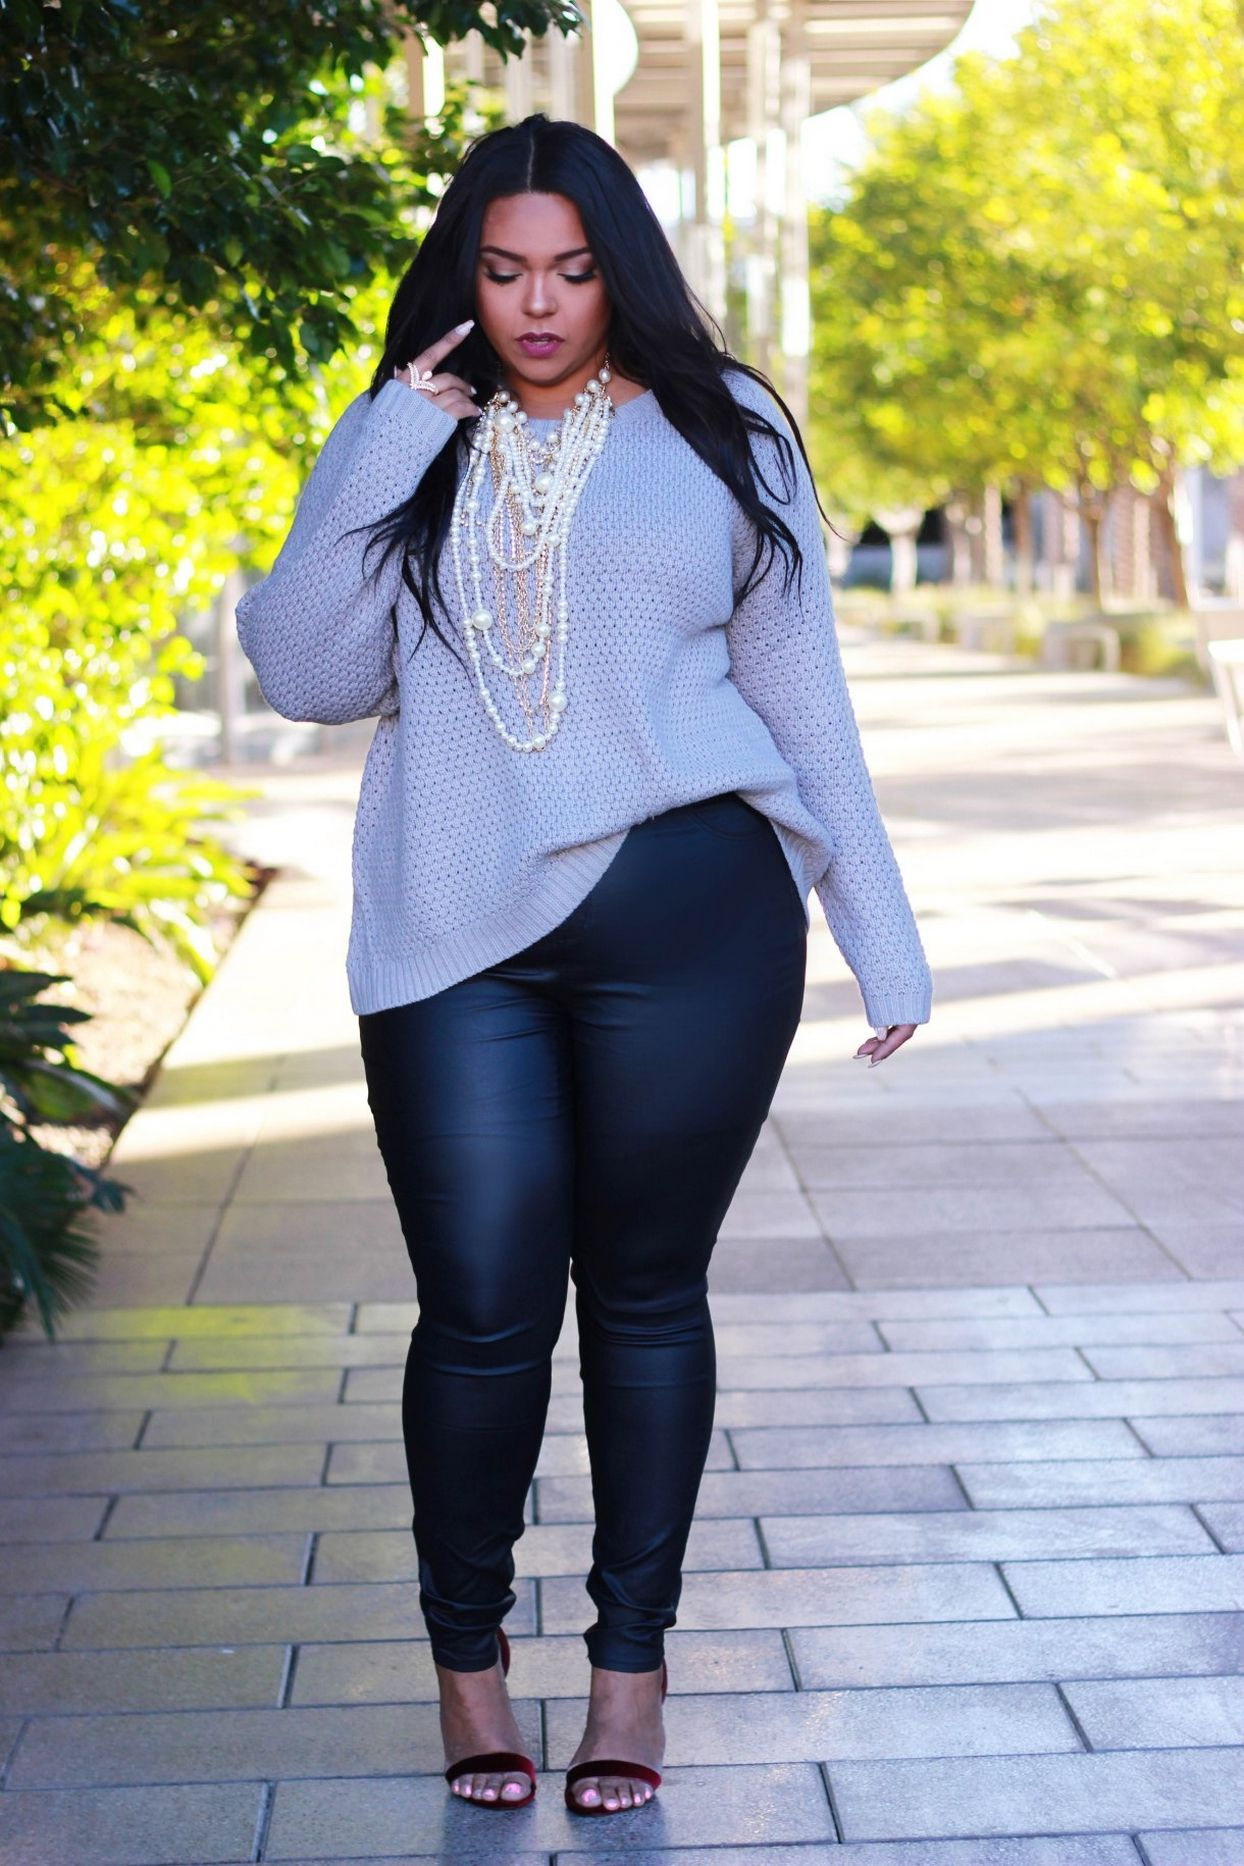 150 plus size outfit inspiration will make you beautiful